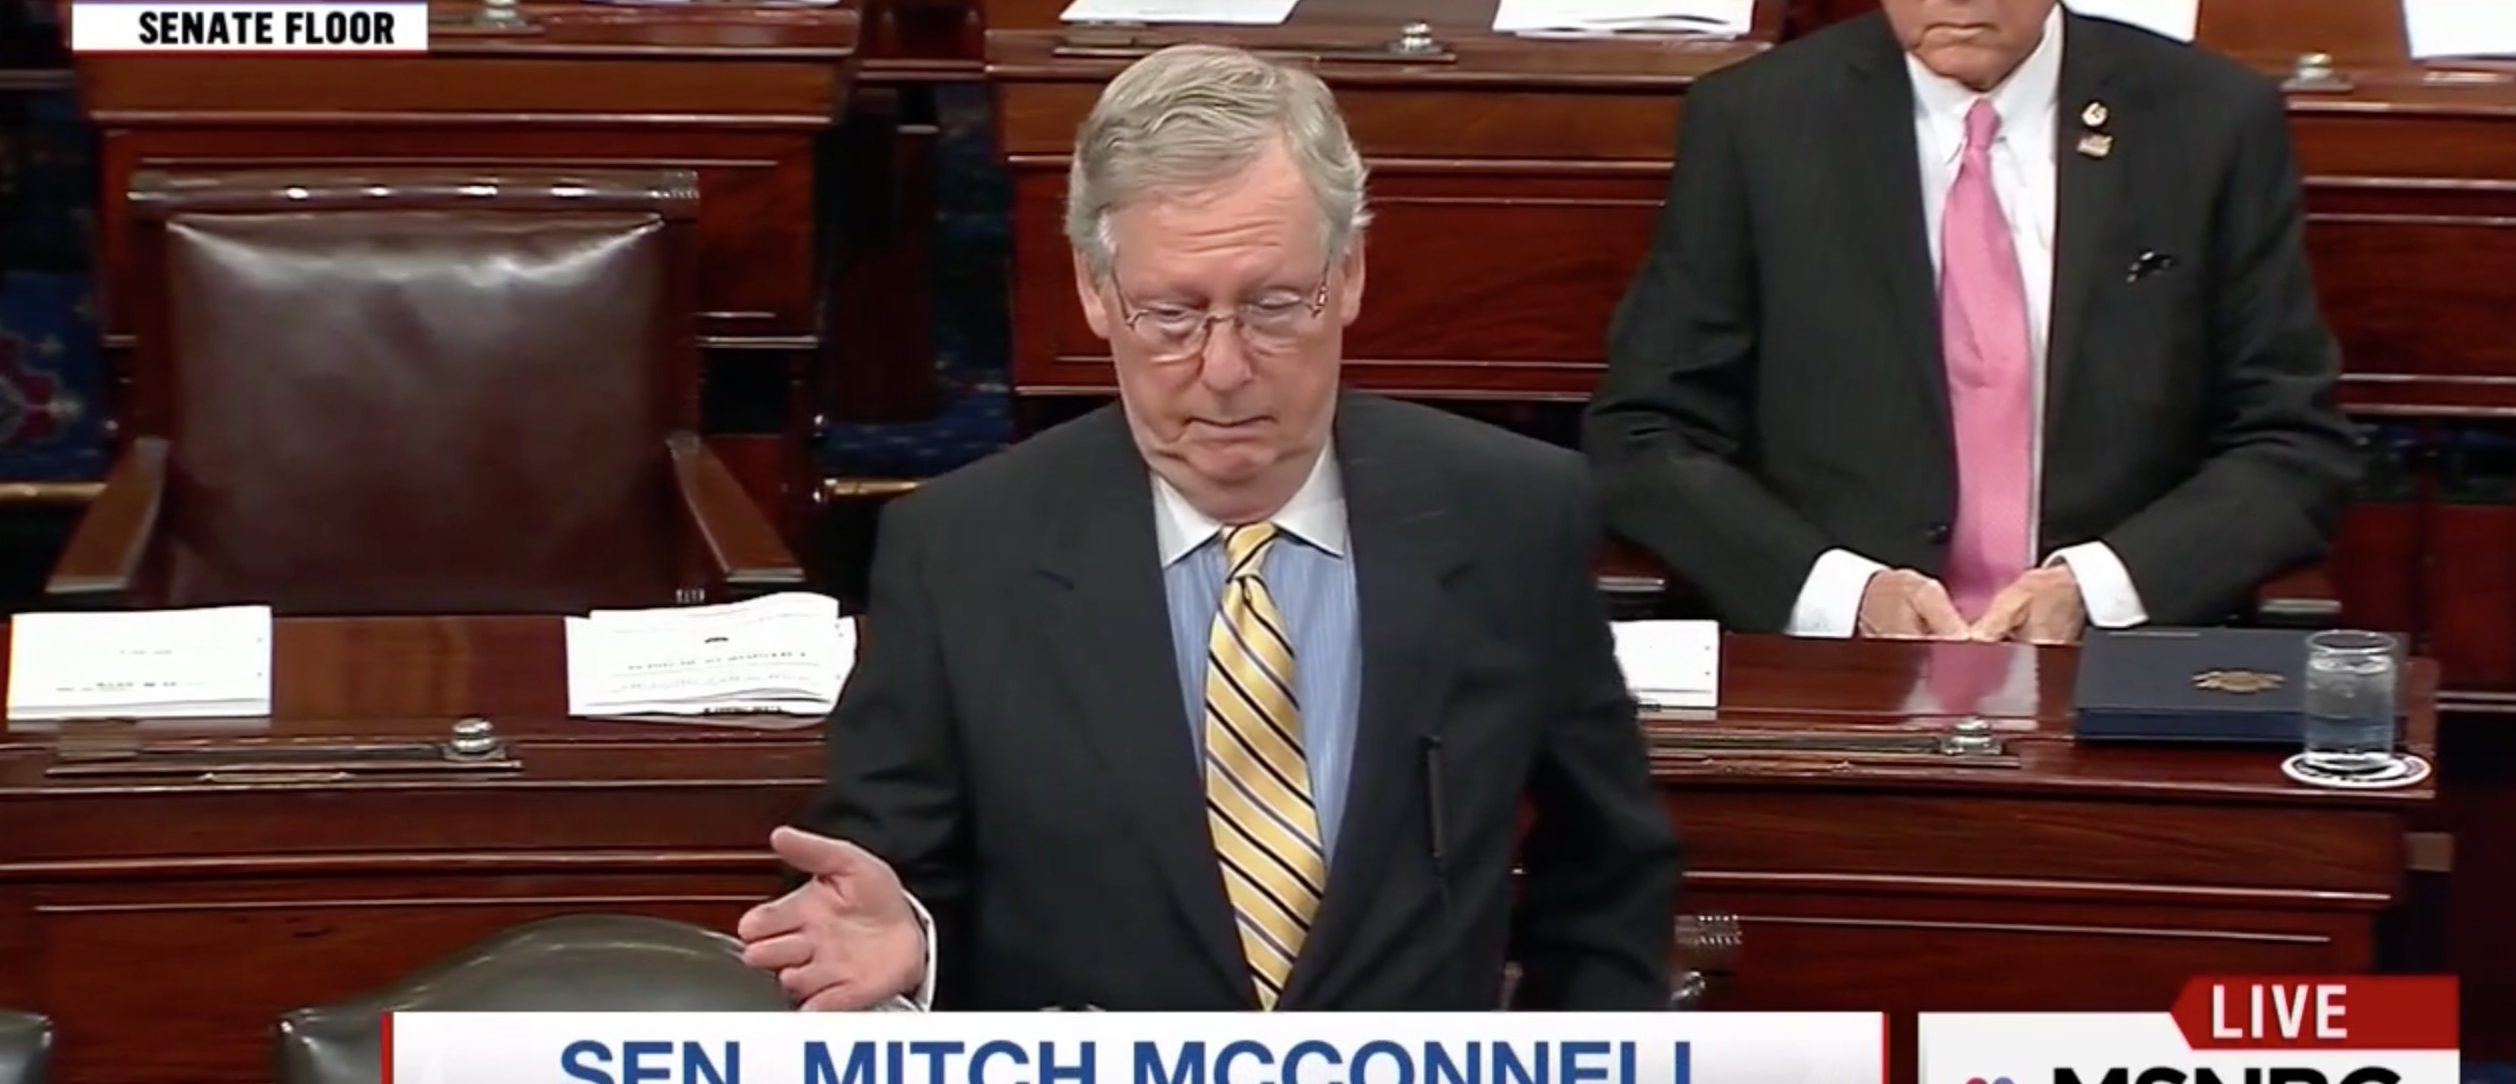 Mitch McConnell, Screen Grab MSNBC, 6-16-2016